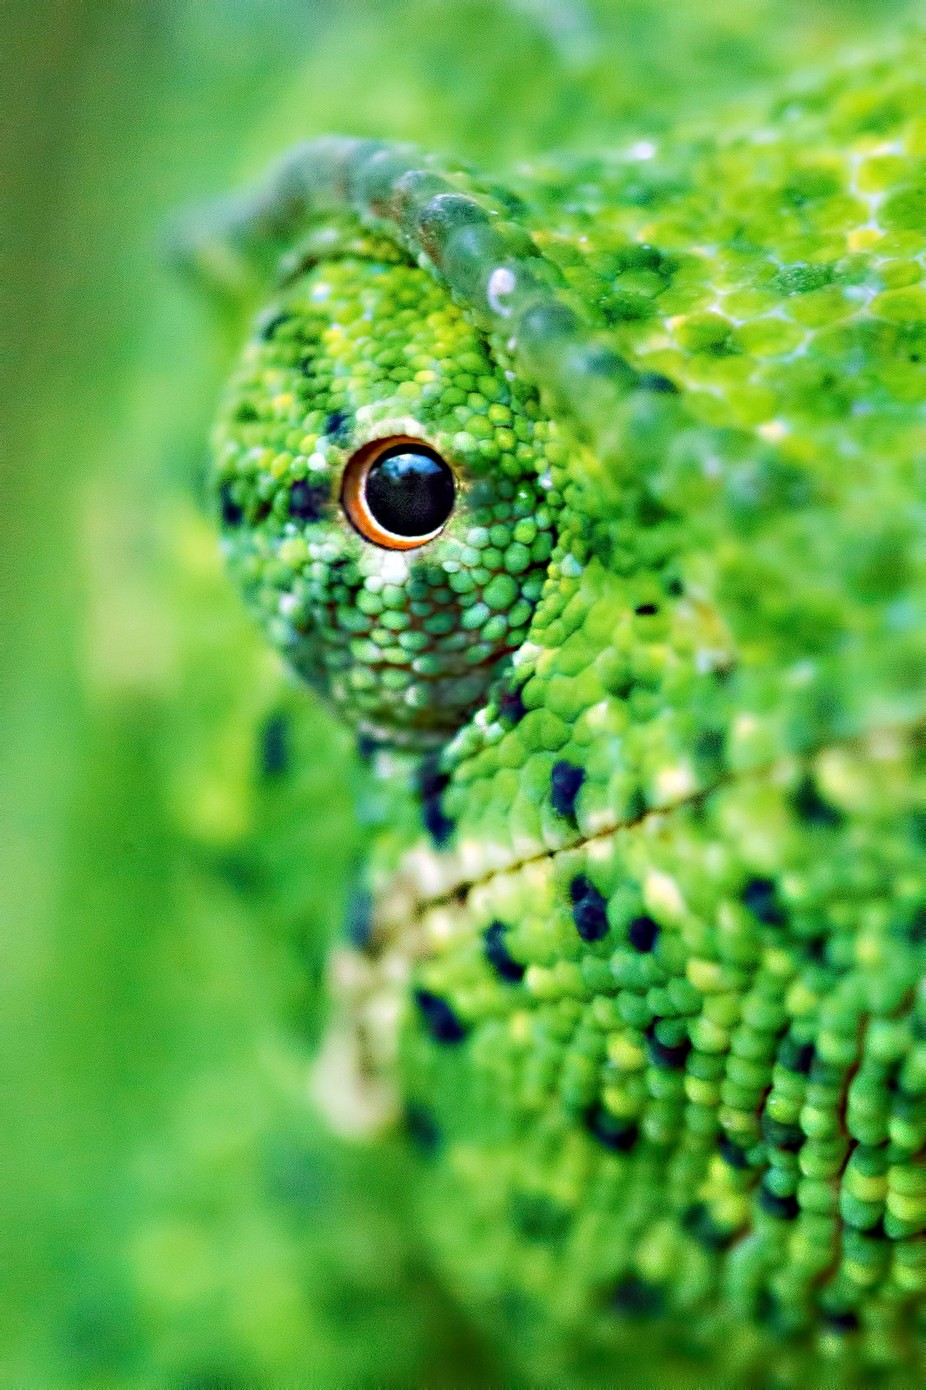 Keeping an eye on you by kdooley - Reptiles Photo Contest